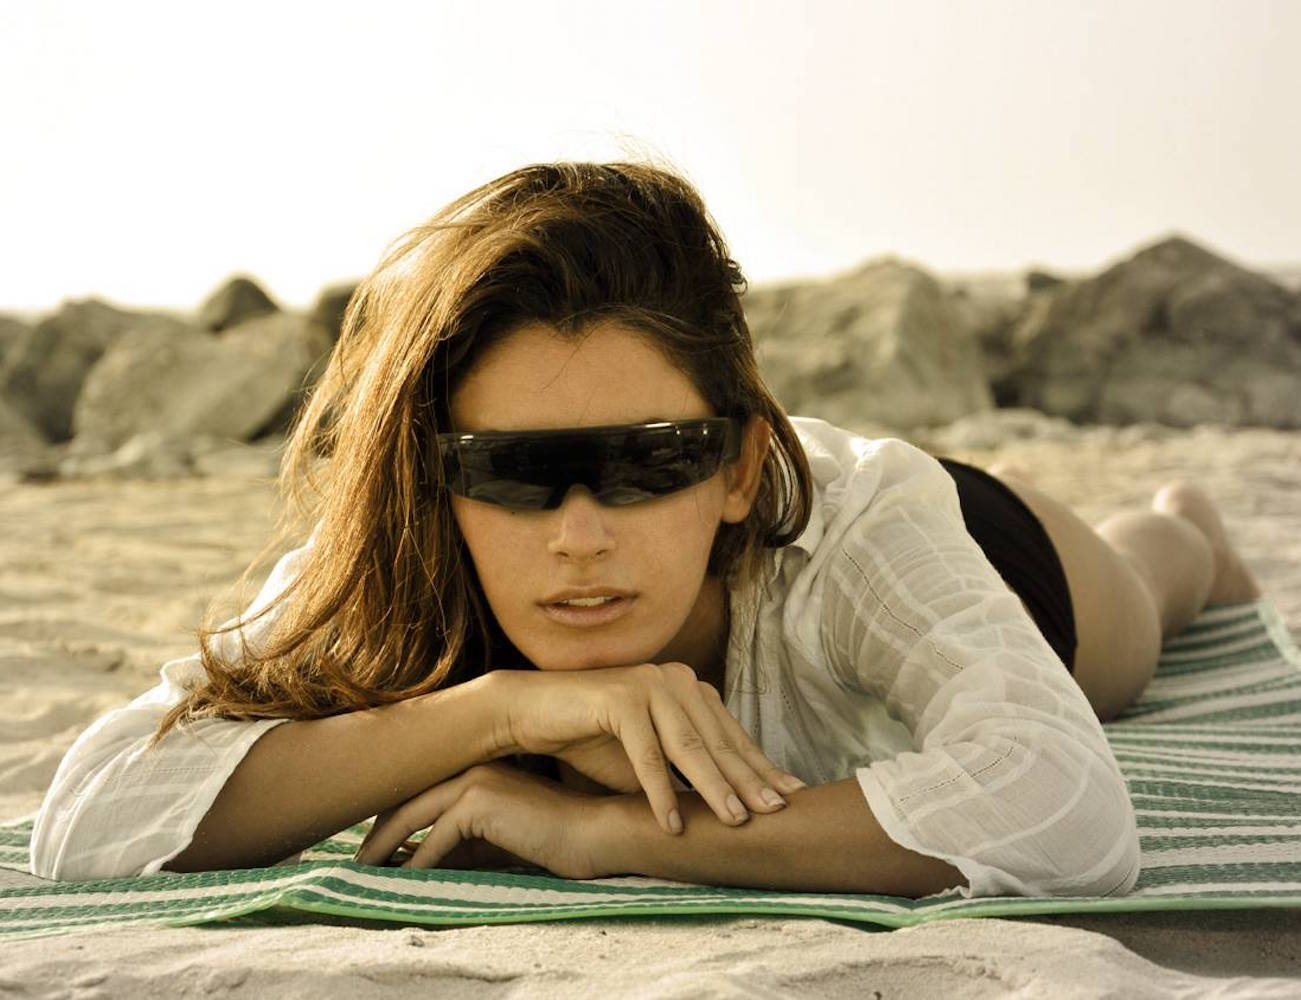 ITVGoggles+WideView+3D%2B+Movie+Viewer